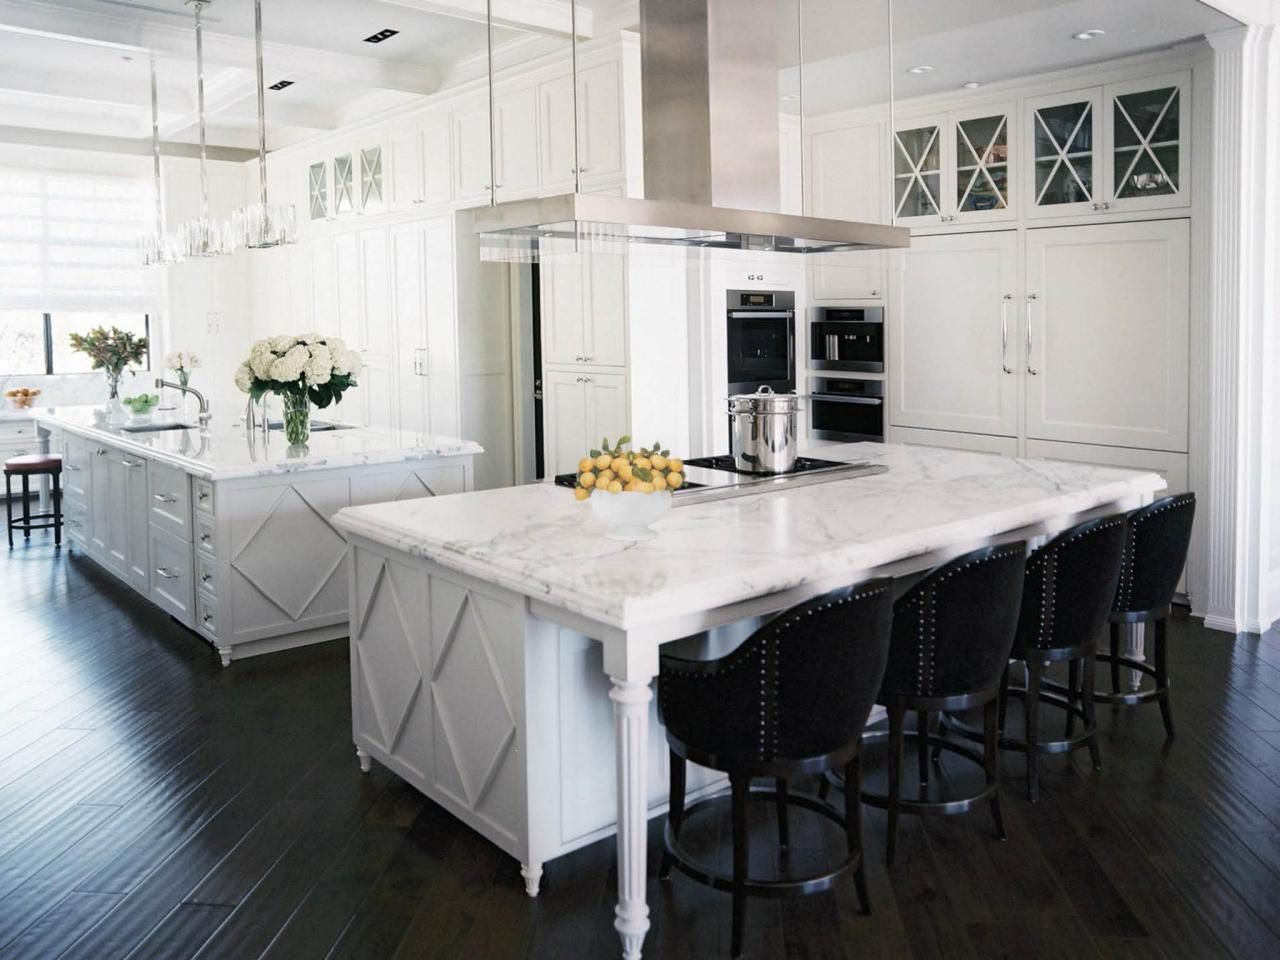 30+ Modern White Kitchen Design Ideas and Inspiration | Stainless ...